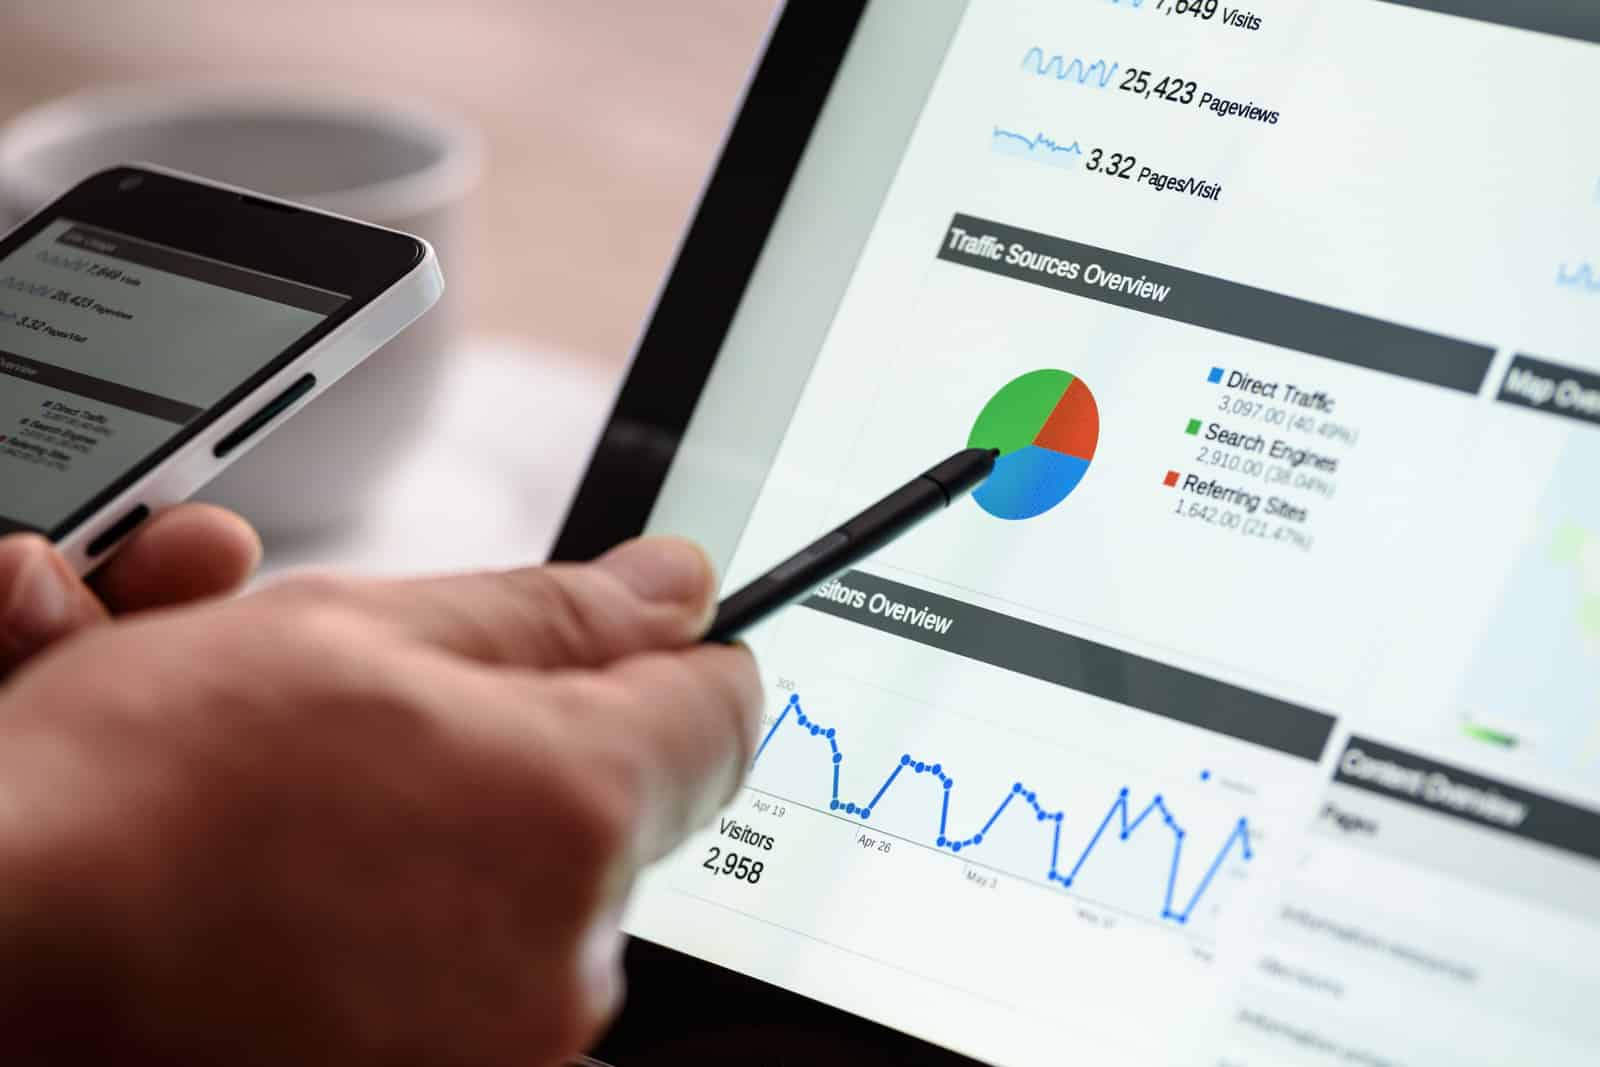 A good search engine optimization strategy starts with knowing where you stand